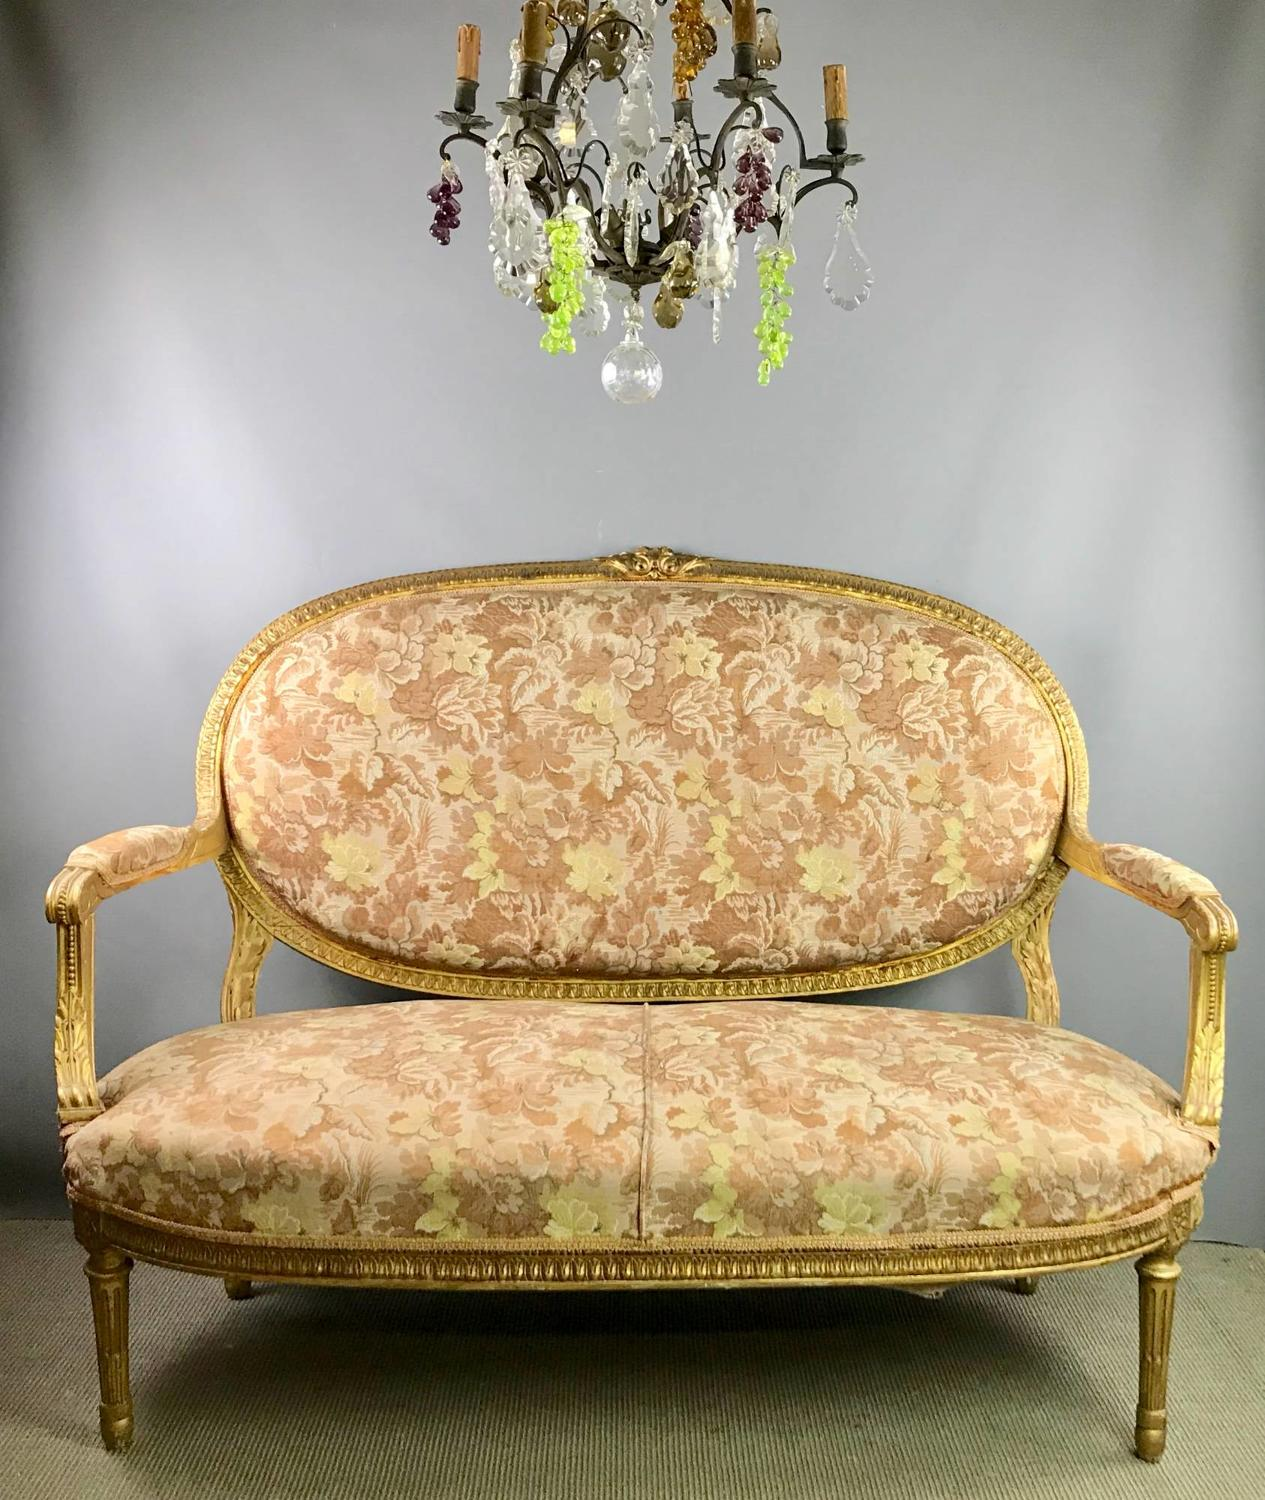 French Giltwood Settee in Louis XVI Style